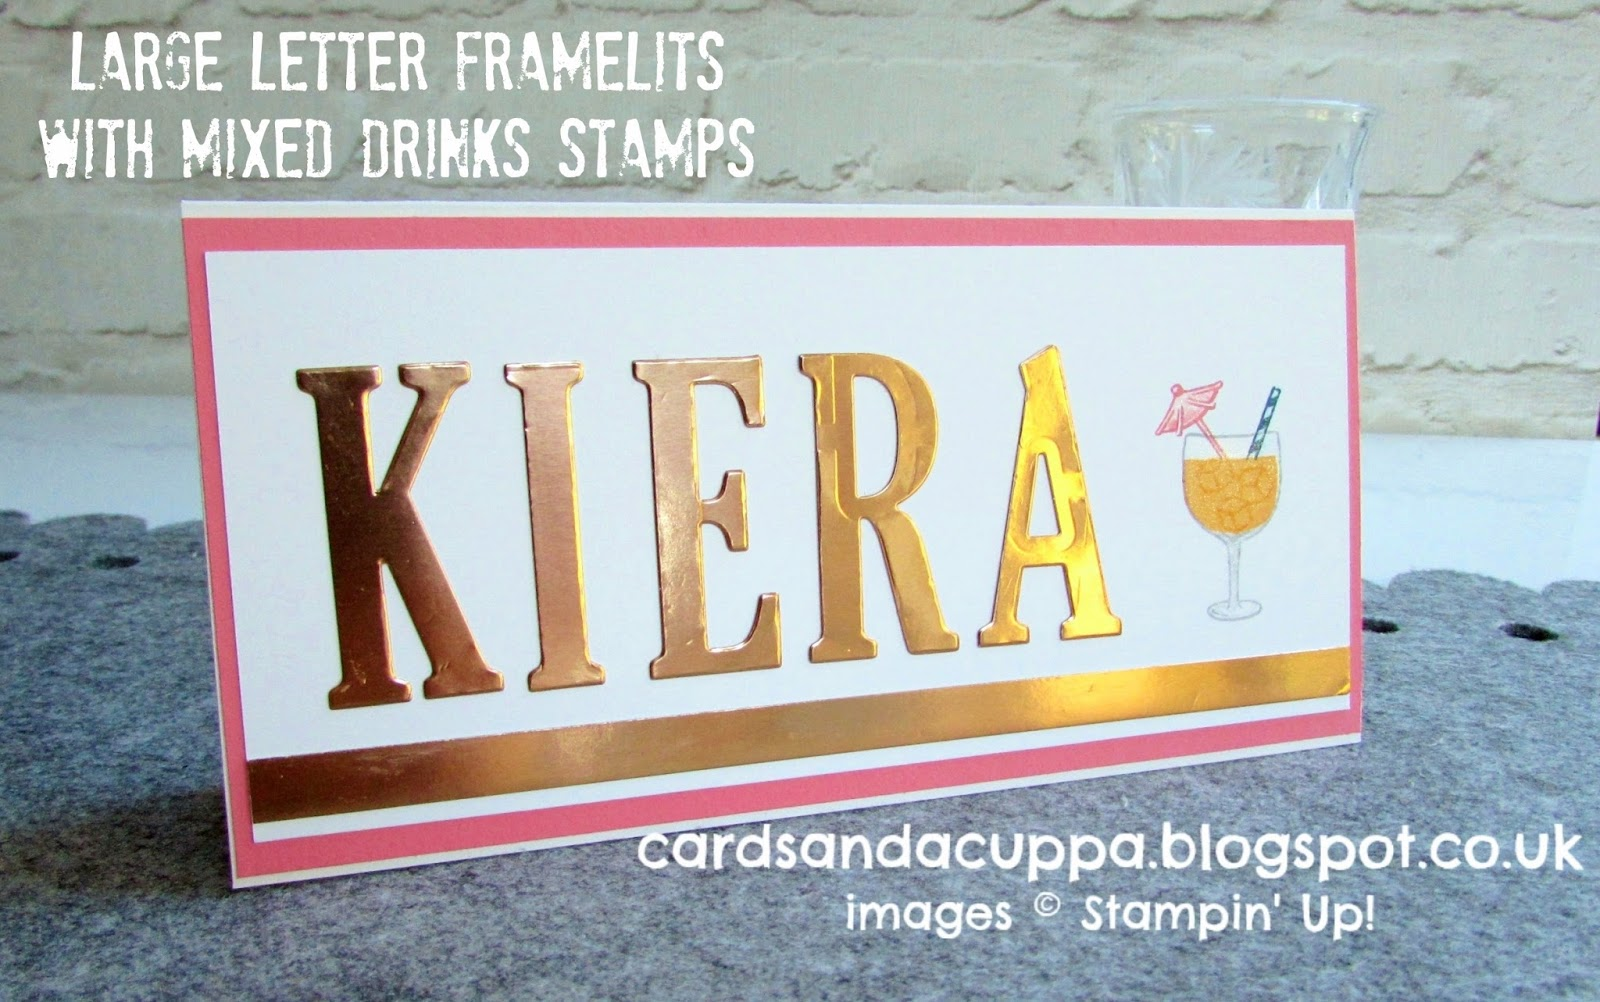 Sarah jane rae cardsandacuppa stampin up uk order online 247 i used my large letter framelits to die cut kiera from copper foil sheets and teamed it with the mixed drinks stamps to make this card bookmarktalkfo Gallery